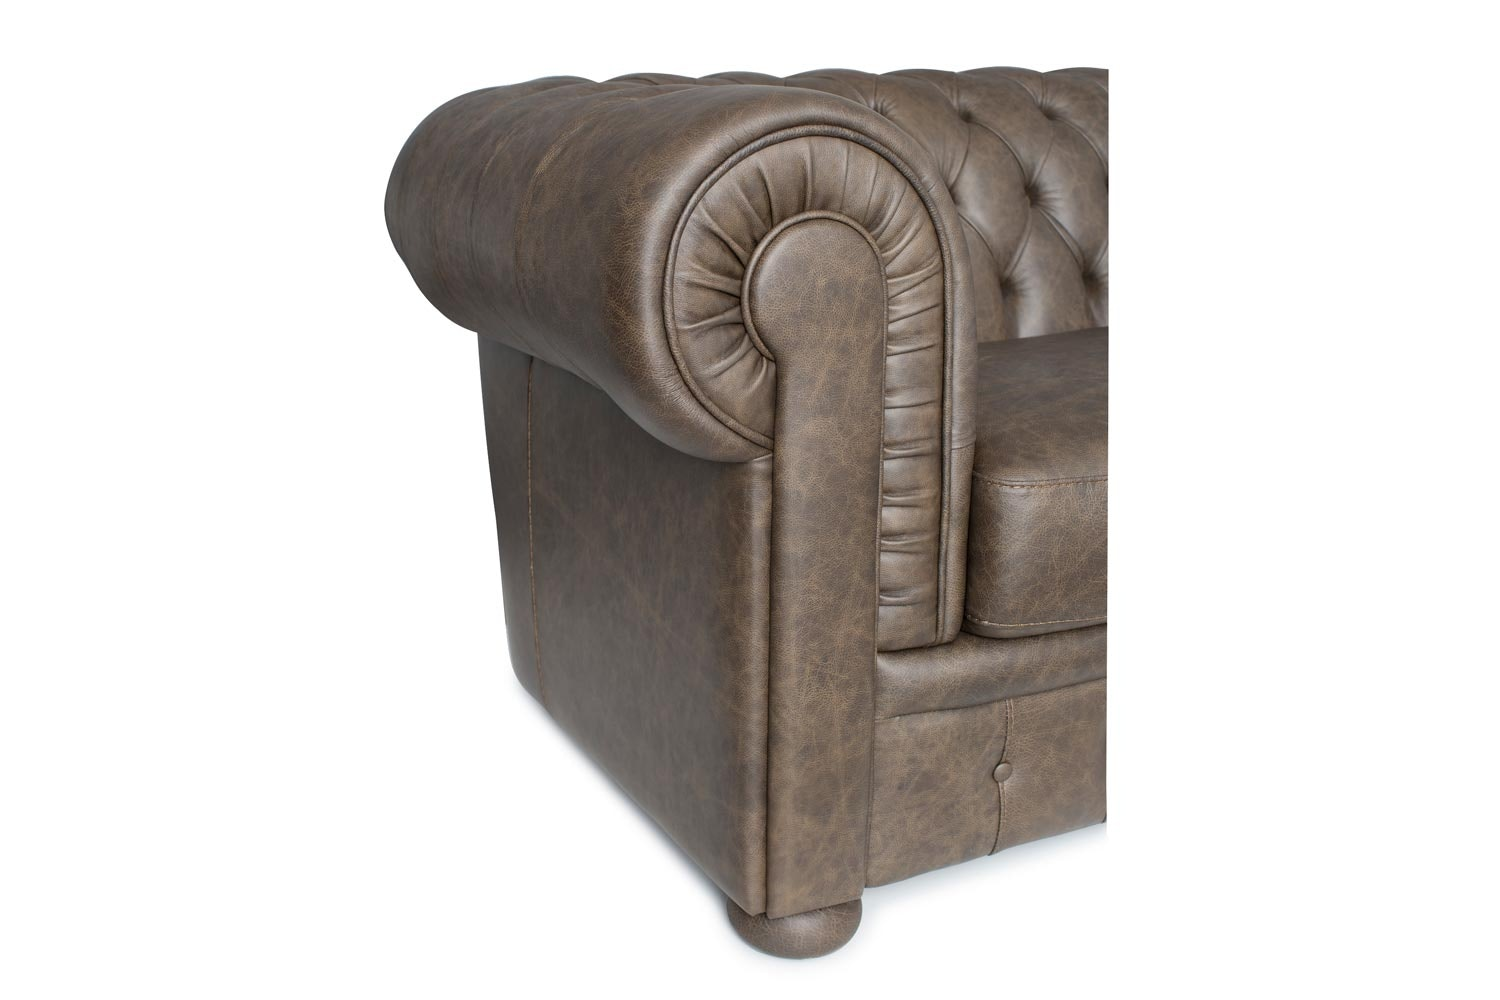 Marlowe 2.5 Seater Leather Sofa Detail